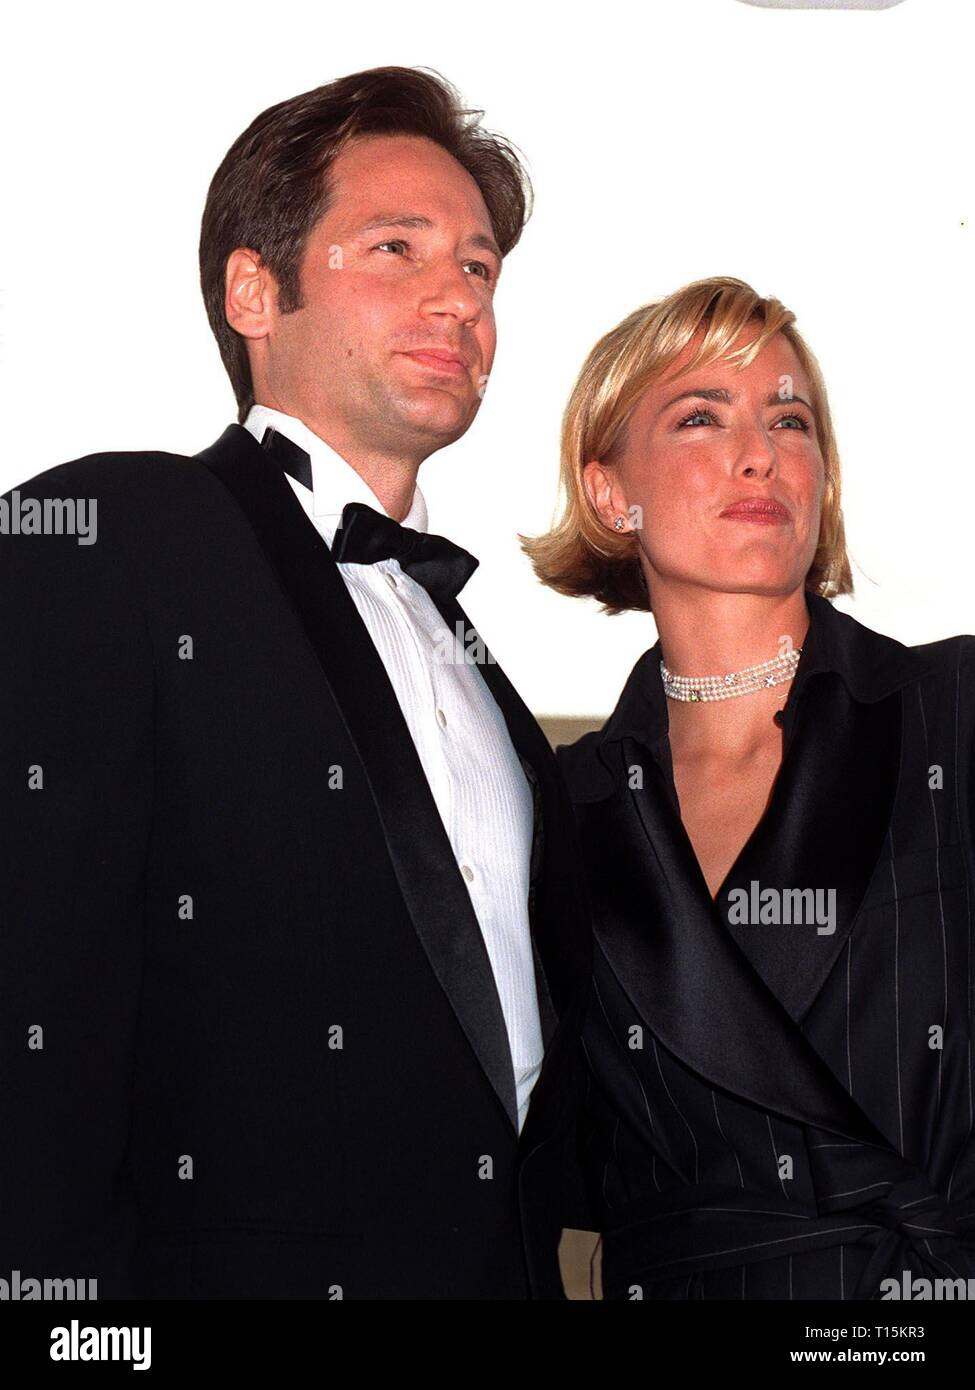 LOS ANGELES, CA. September 14, 1997: X-Files star David Duchovny & wife Tea Leoni at the Emmy Awards in Pasadena. - Stock Image